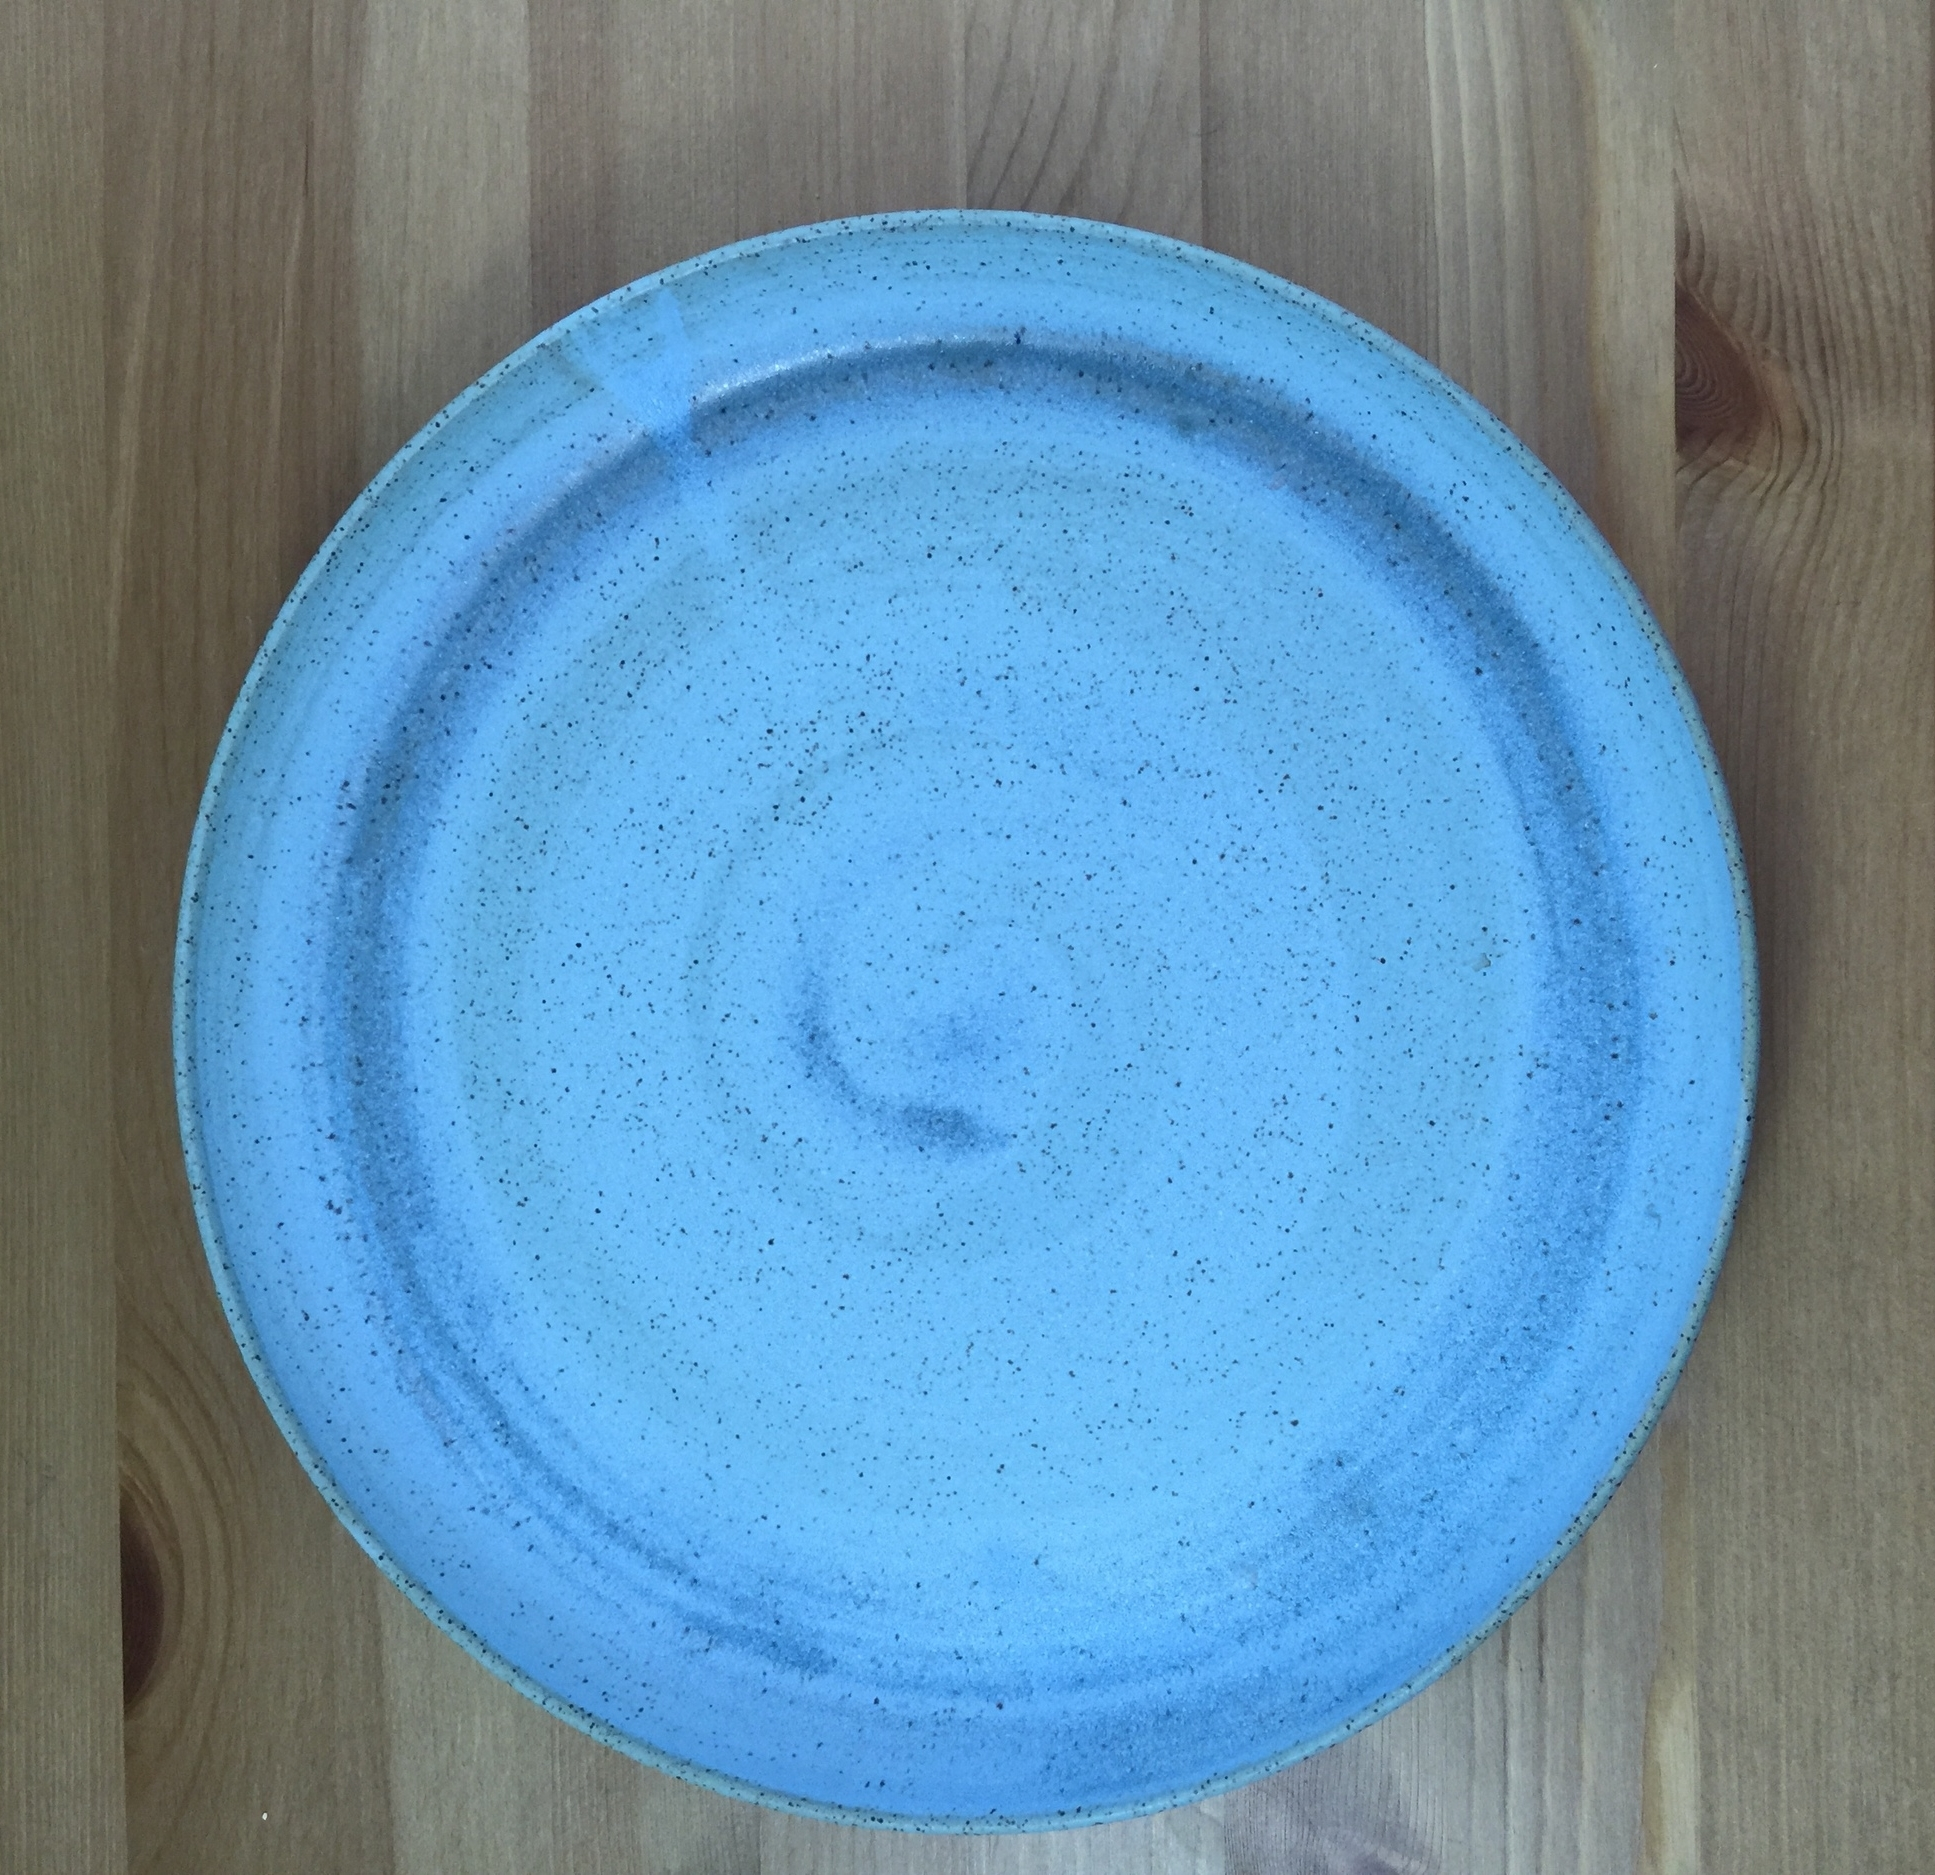 teal platter with clear swirl